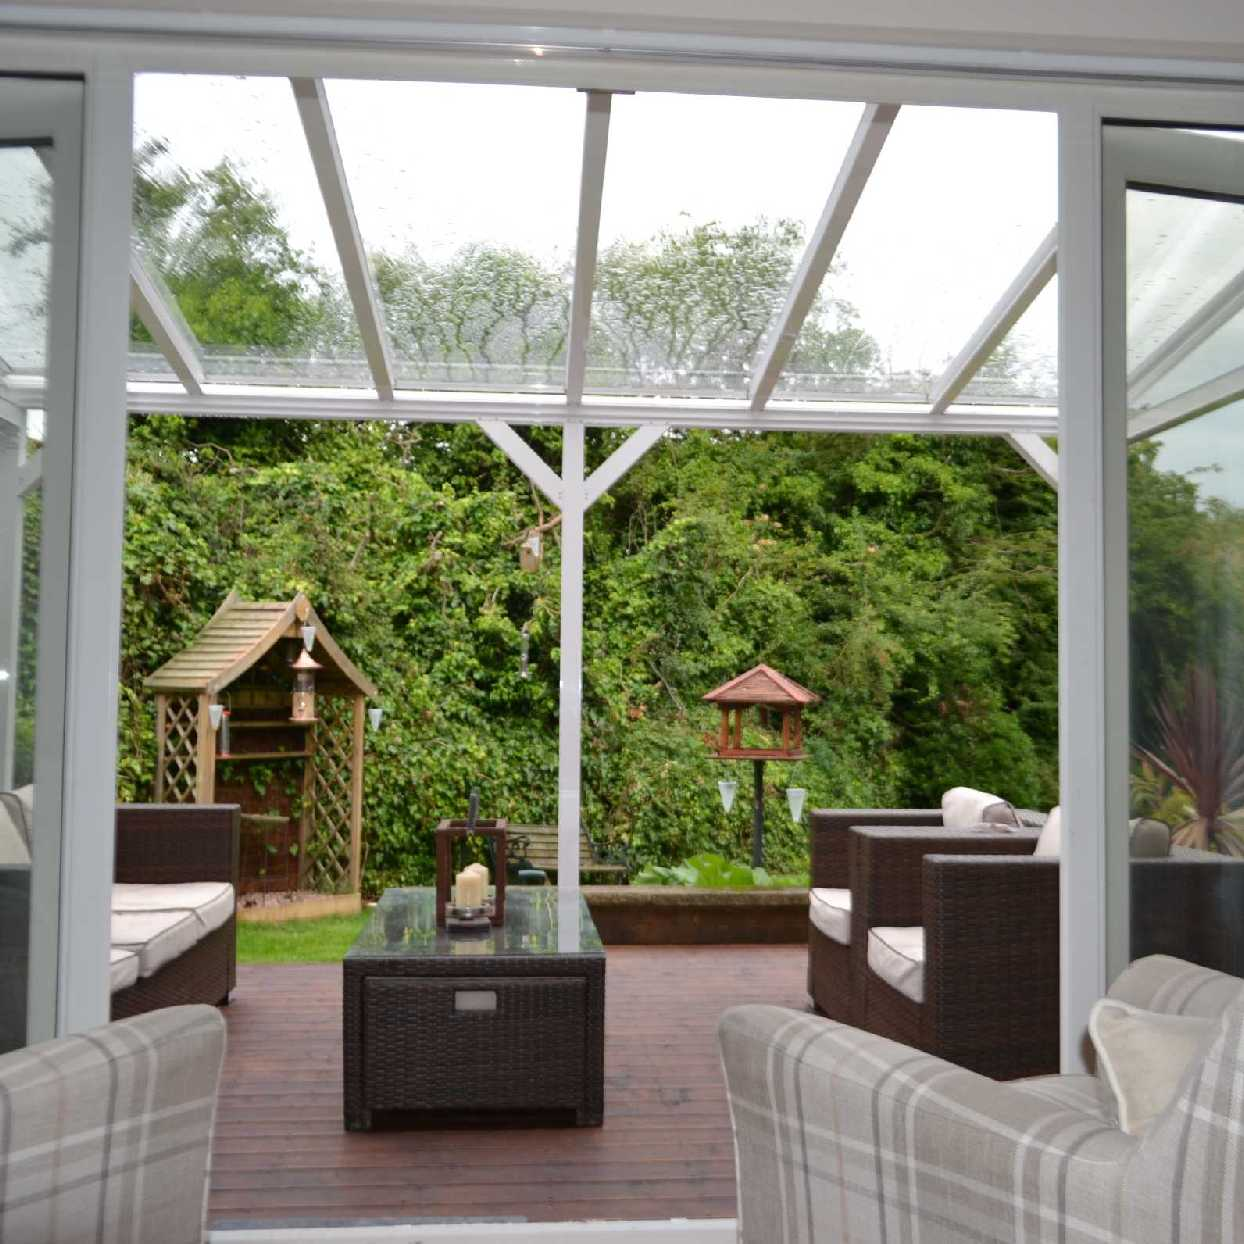 Great selection of Omega Smart White Lean-To Canopy UNGLAZED for 6mm Glazing - 8.4m (W) x 1.5m (P), (4) Supporting Posts